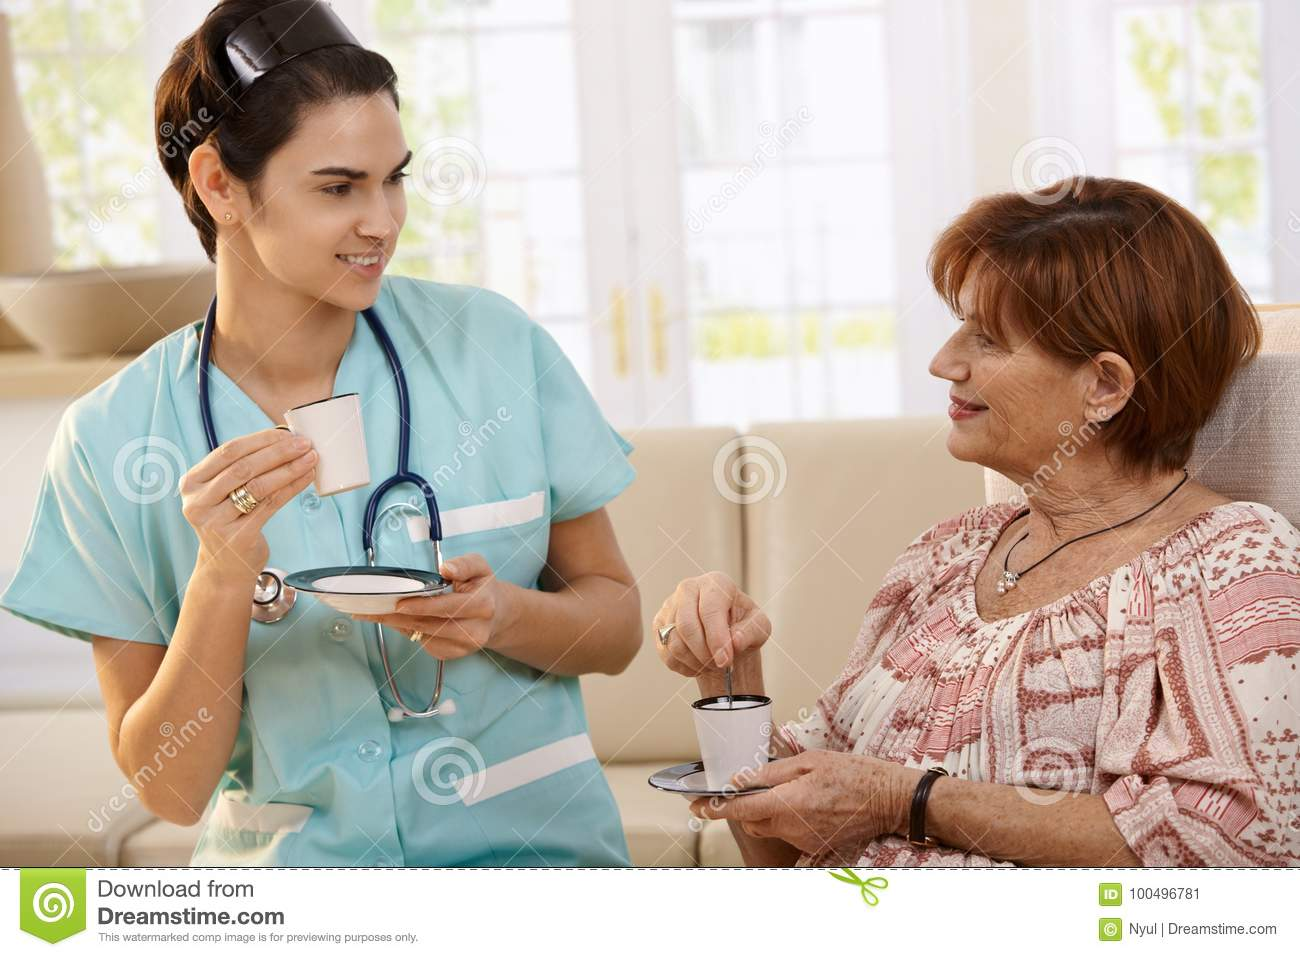 Healthcare at home